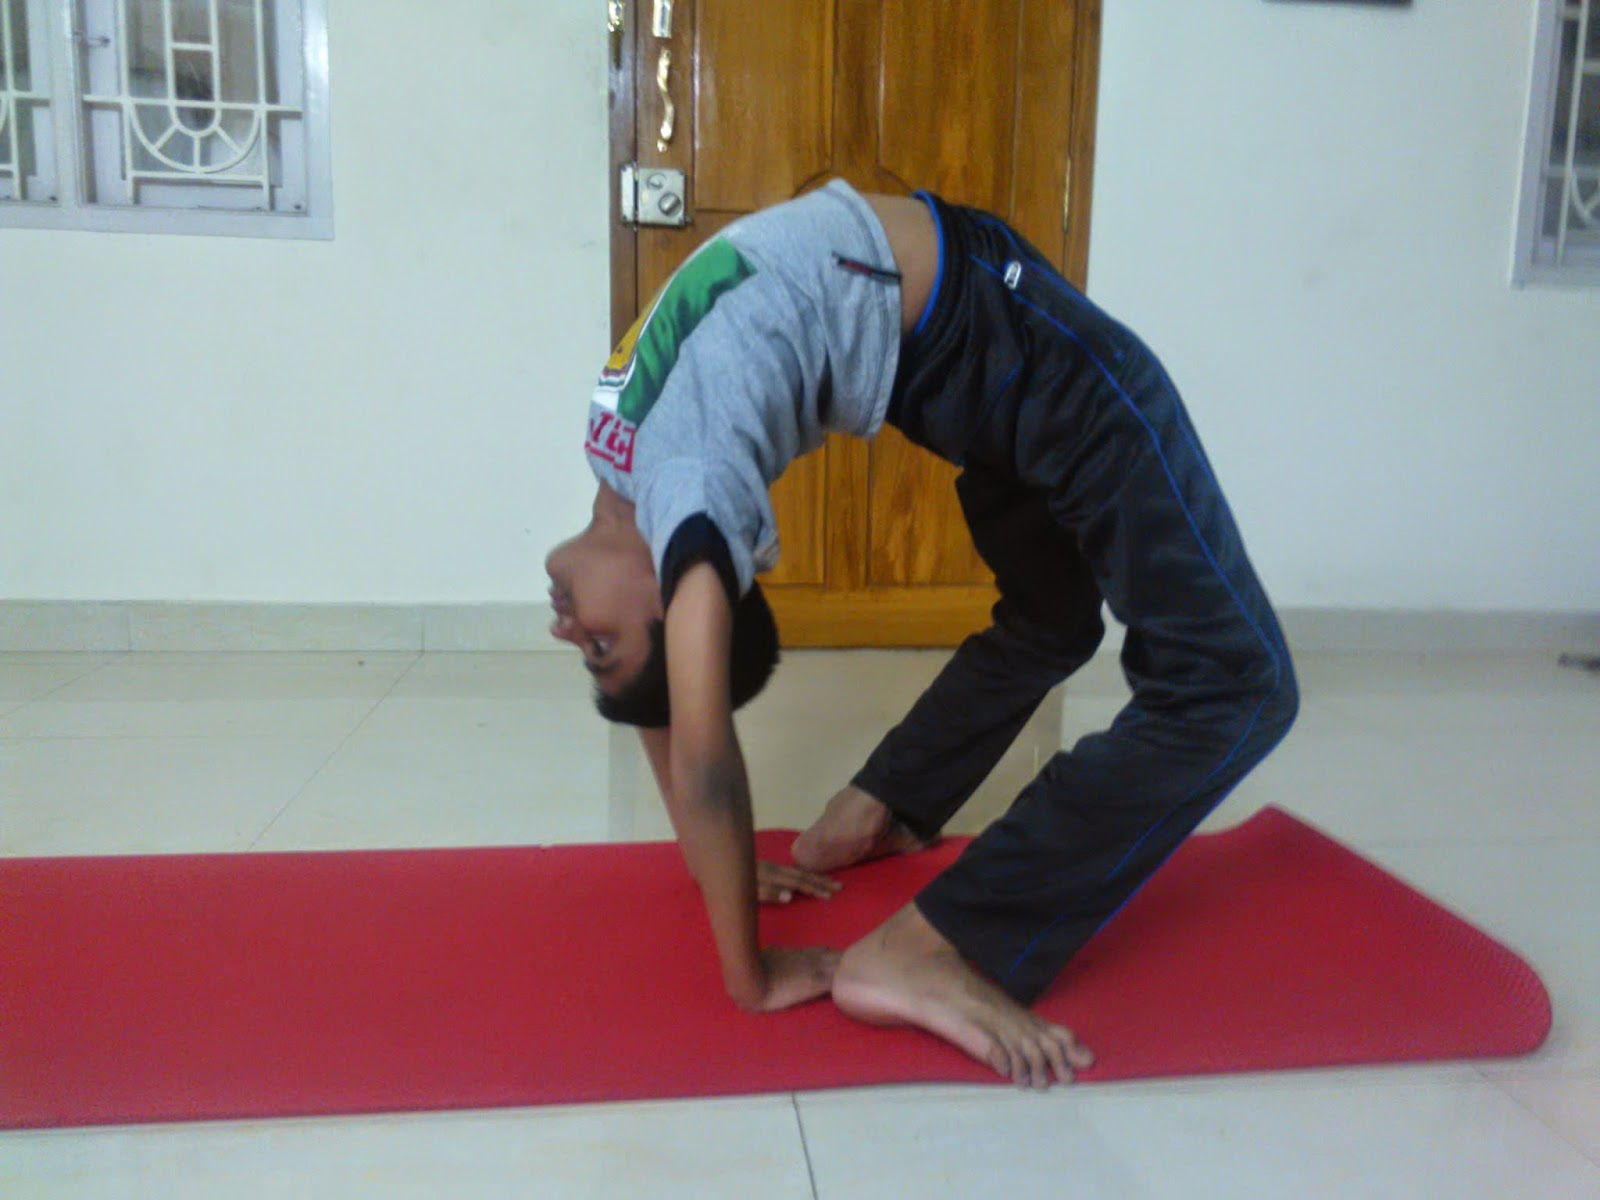 Chakrasana One Of The Challenging Yoga Poses Strengthens Entire Back Muscles It Has Innumerable Benefits And You May Love Fact That Is